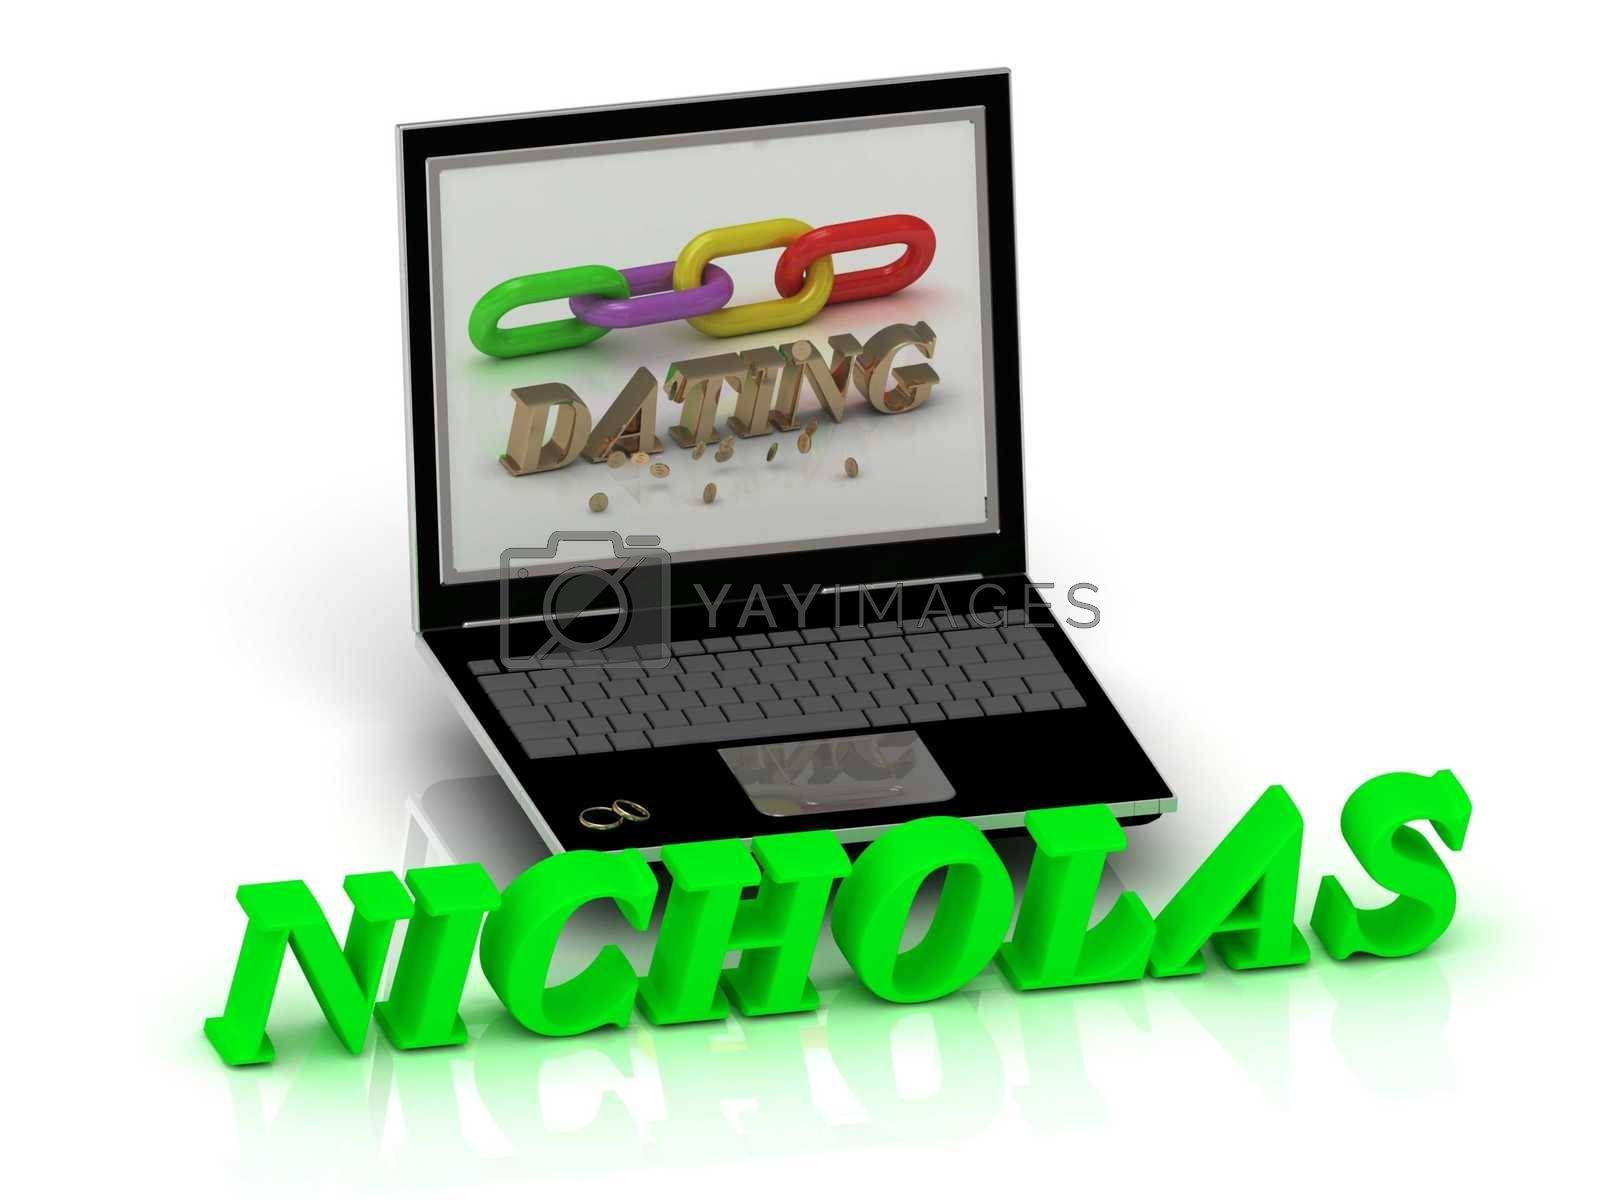 NICHOLAS- Name and Family bright letters near Notebook and  inscription Dating on a white background